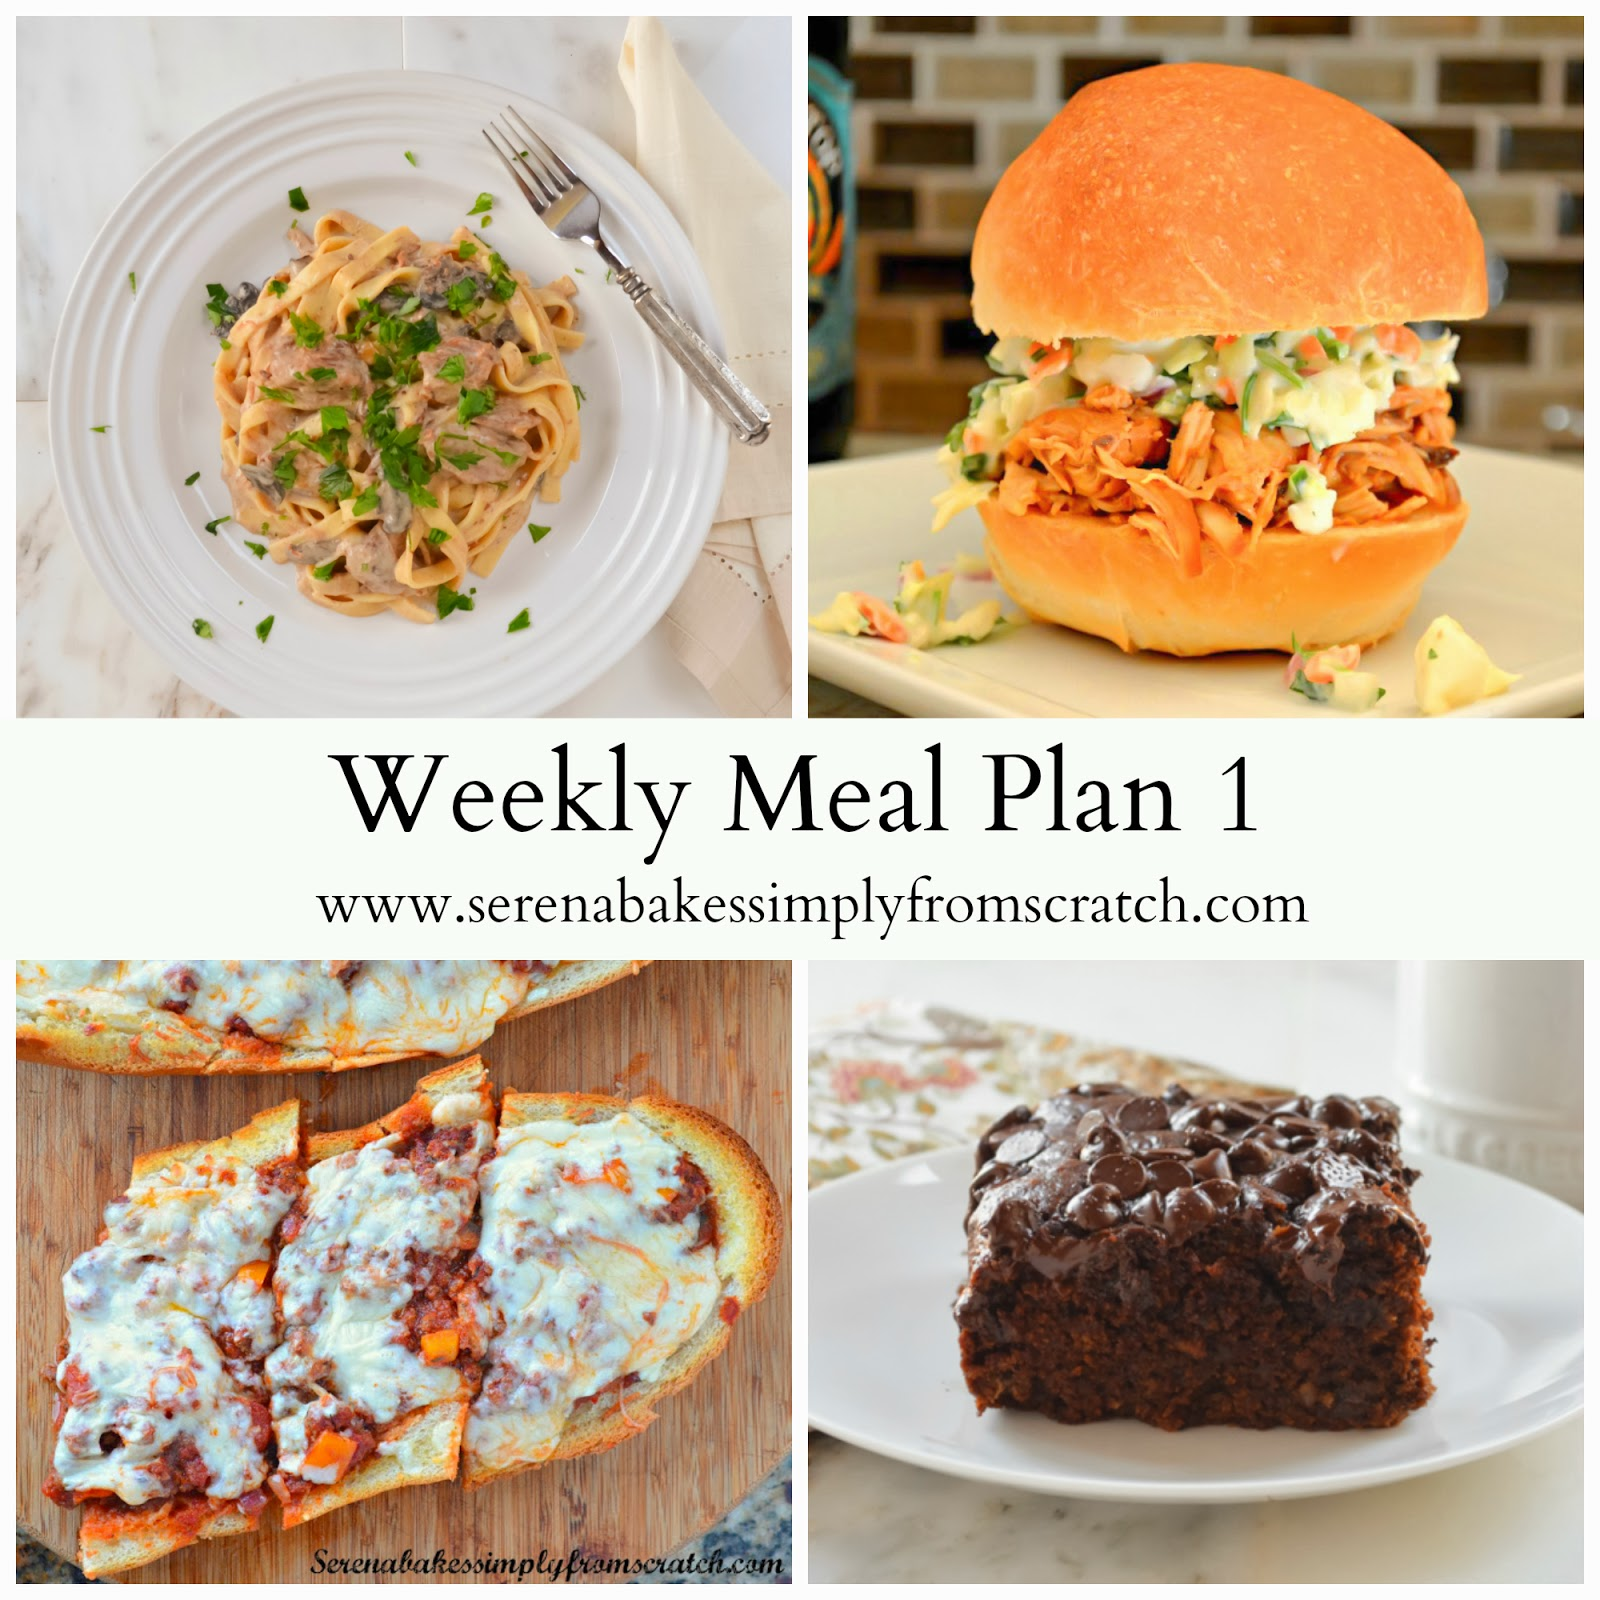 Weekly Meal Plan to help feed your family| Serena Bakes Simply From Scratch #Menu #Recipe #Dinner